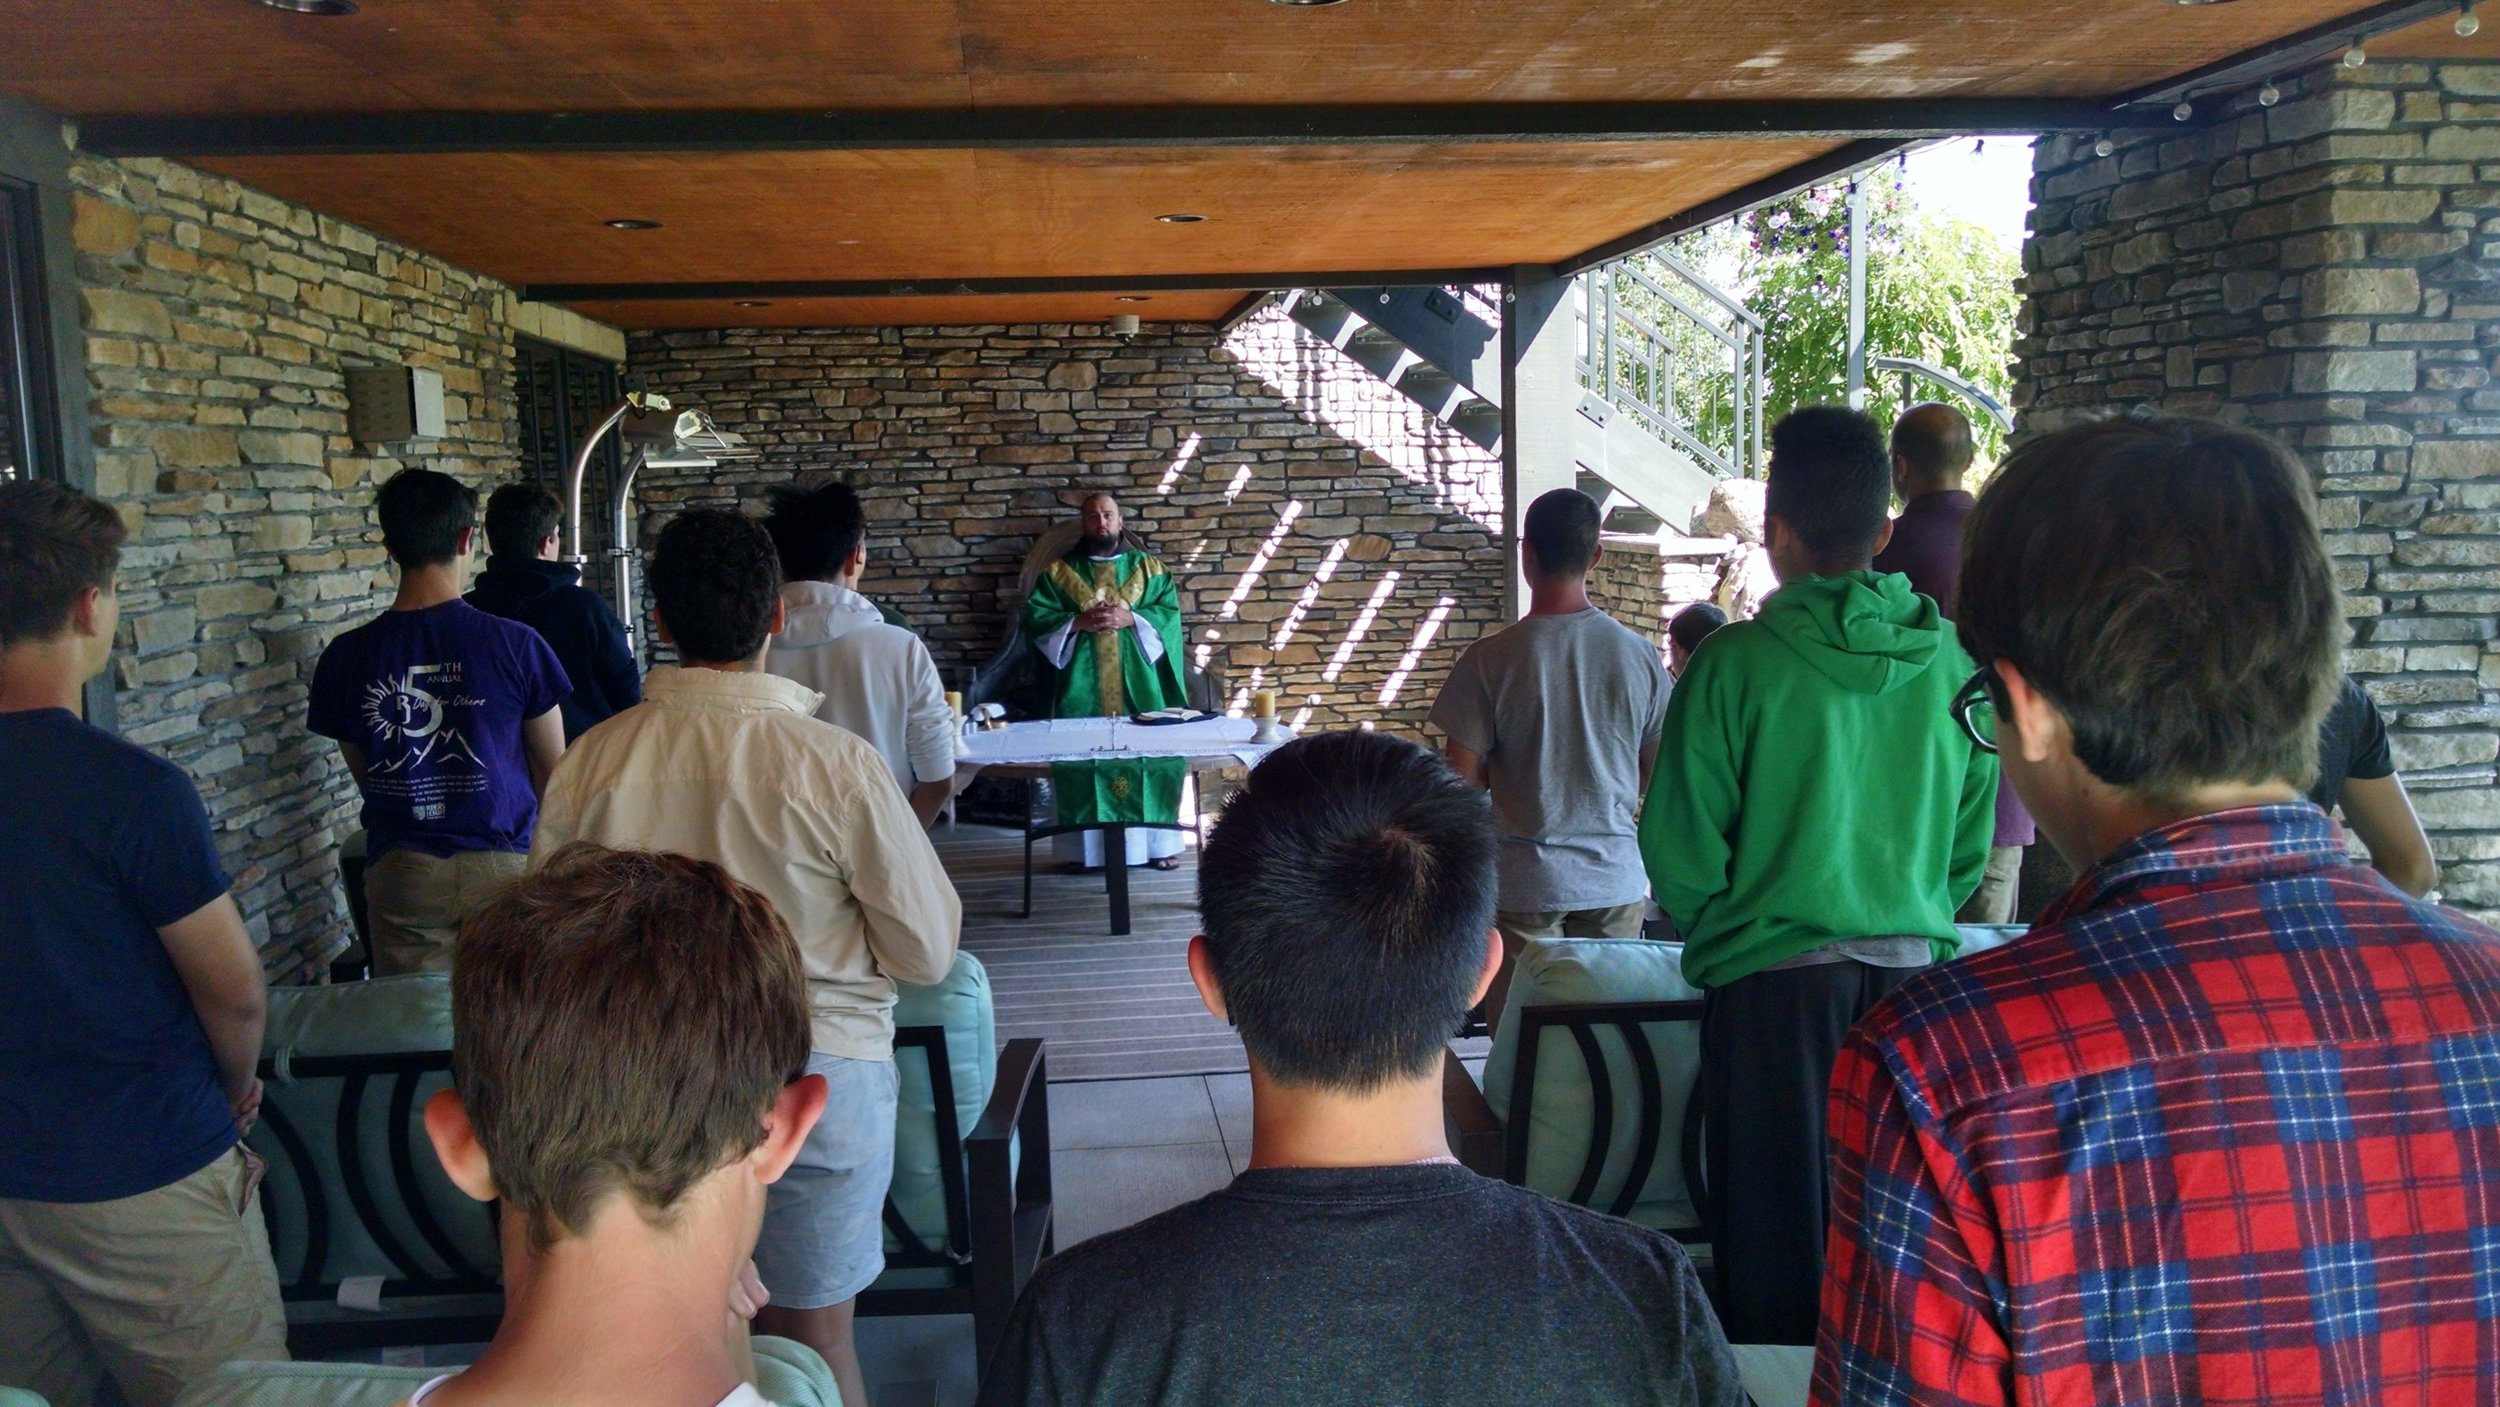 Prayer - Praying the Mass together during our annual retreat.